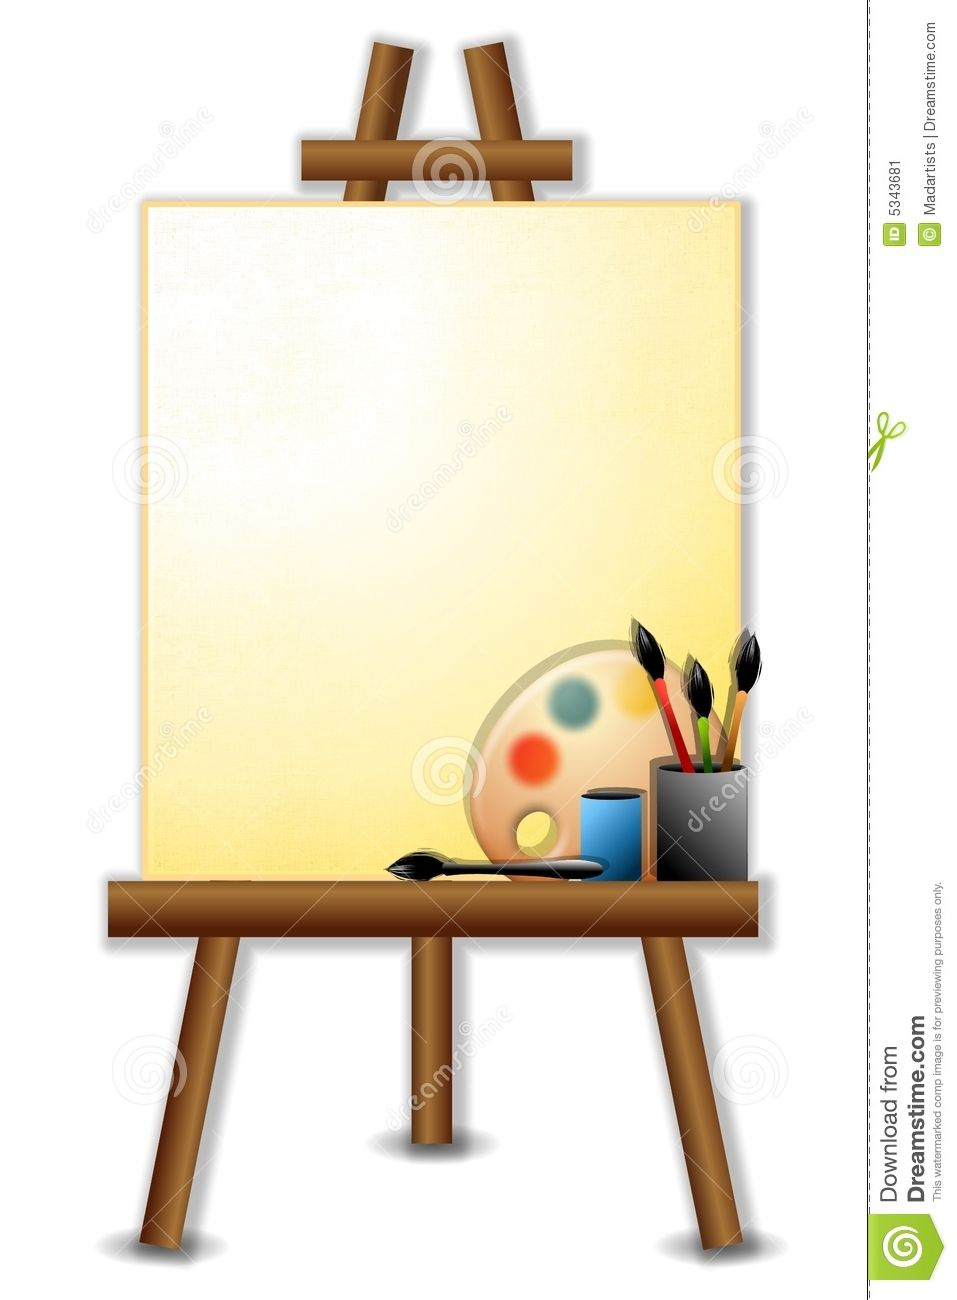 drawings of easels for painting images - - Yahoo Image Search ...